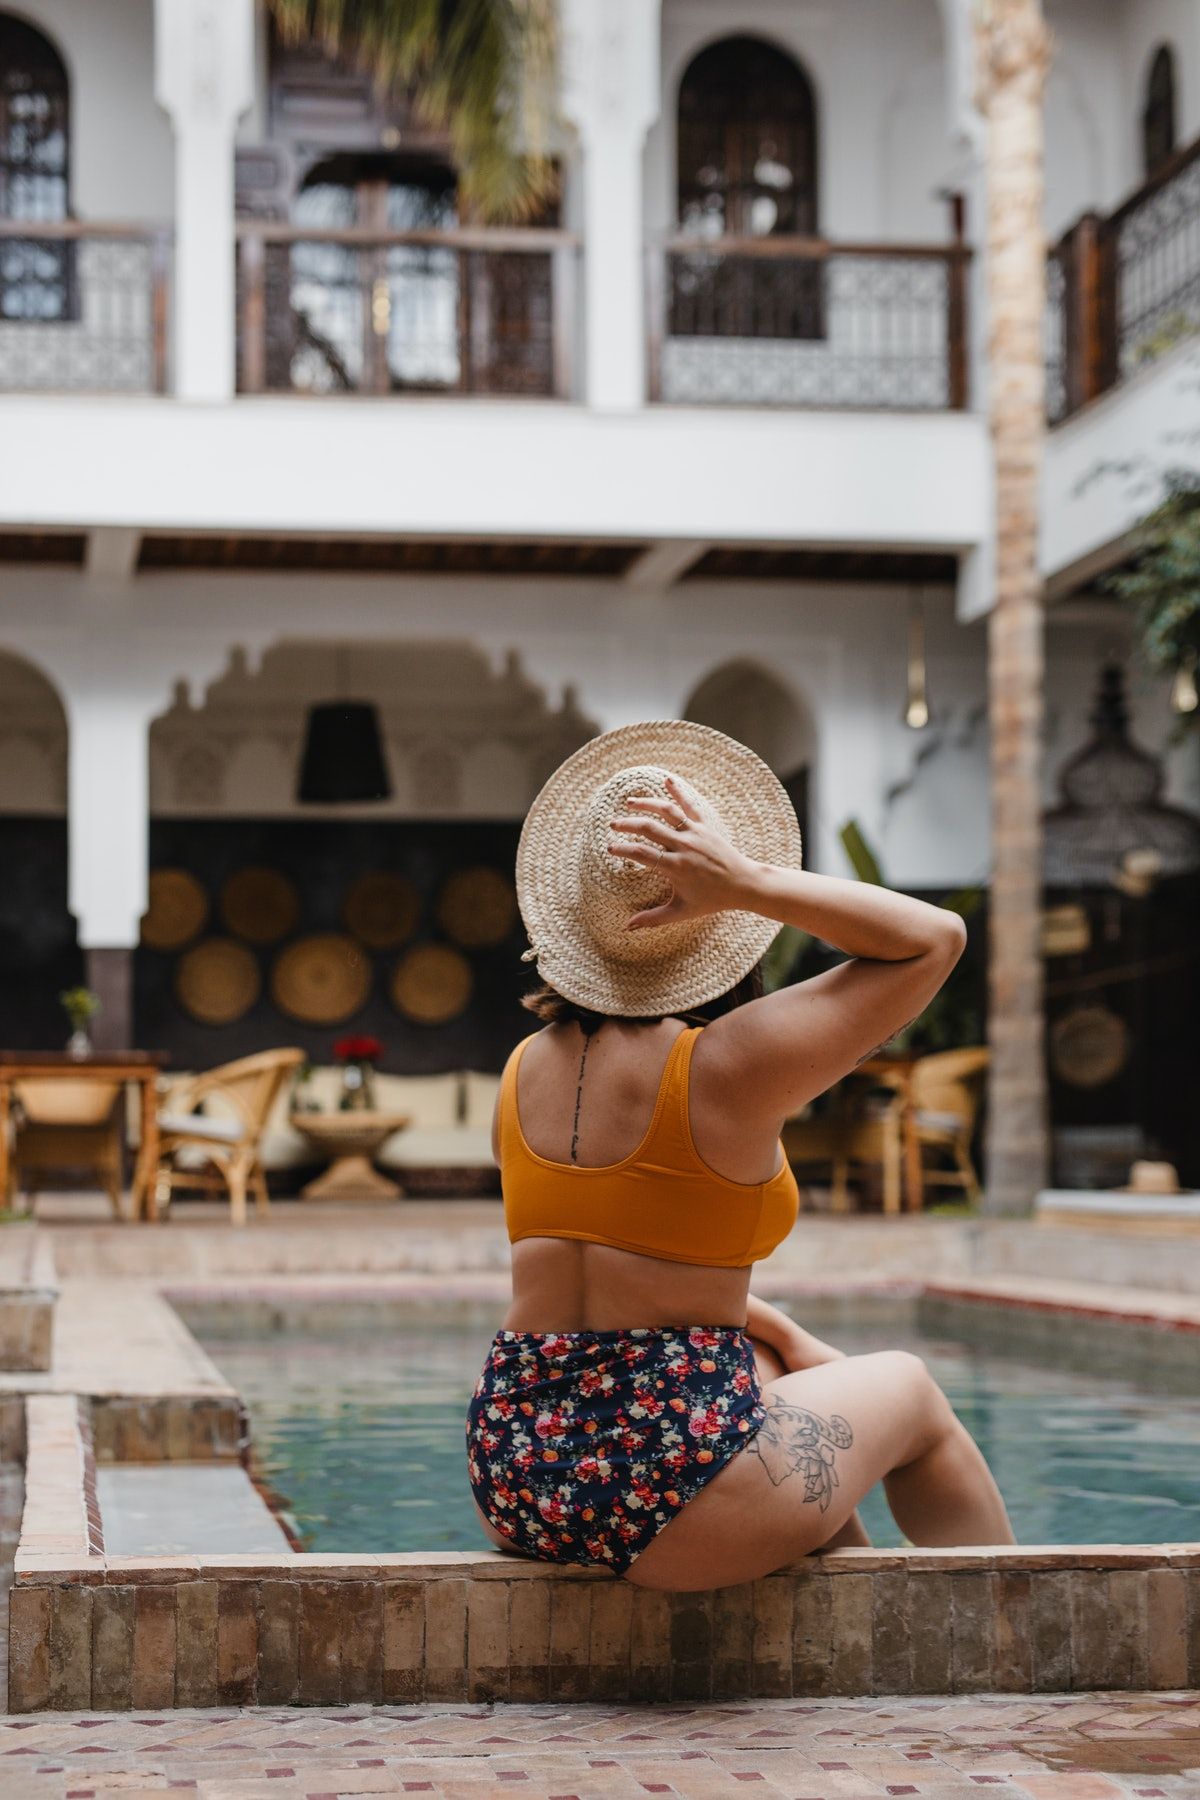 A young woman poses by a hotel's pool in a bathing suit and straw hat.